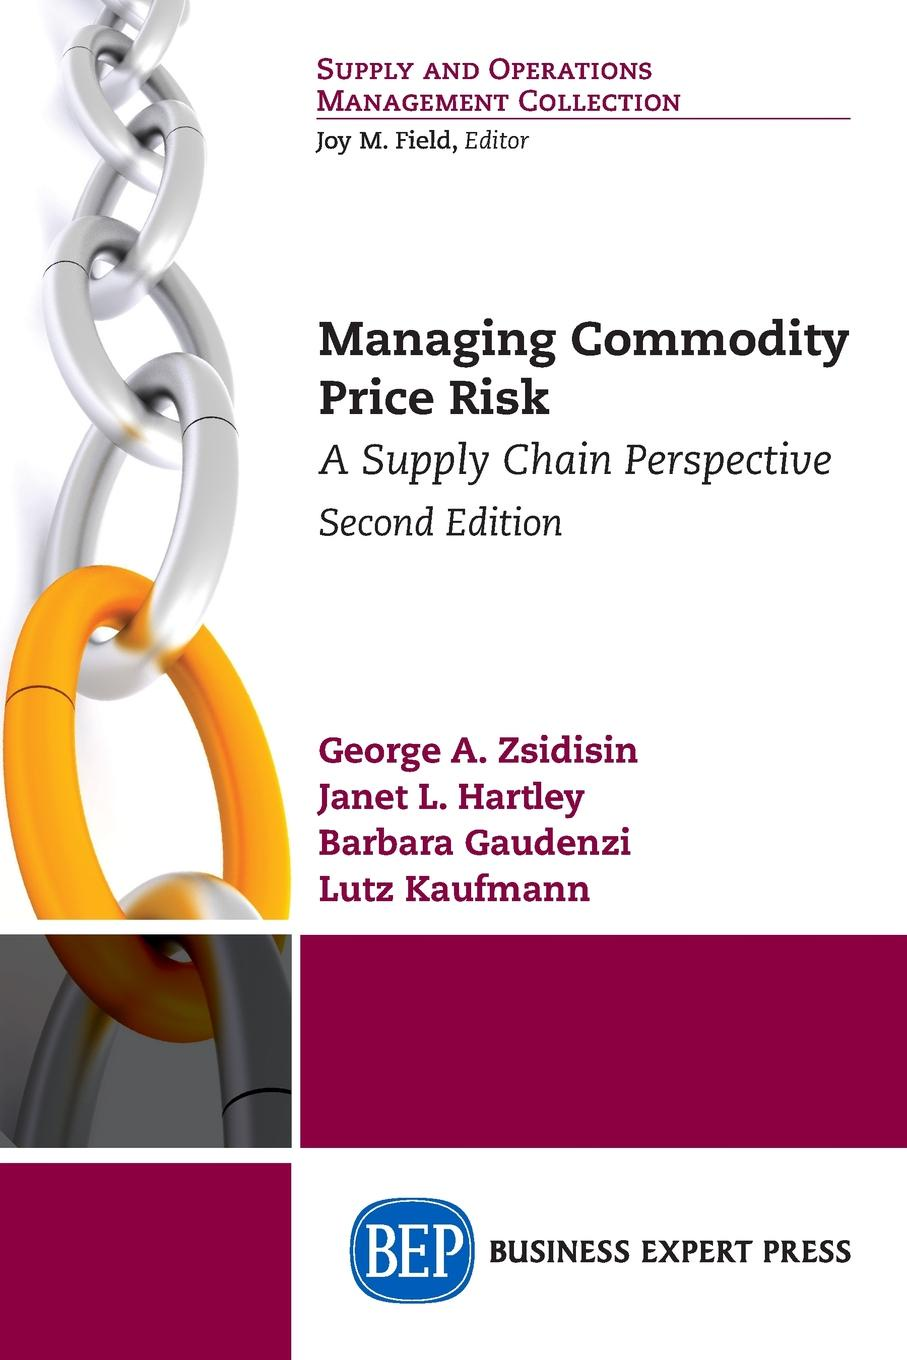 George A. Zsidisin, Janet L. Hartley, Barbara Gaudenzi Managing Commodity Price Risk. A Supply Chain Perspective, Second Edition thomas stanton managing risk and performance a guide for government decision makers isbn 9781118841761